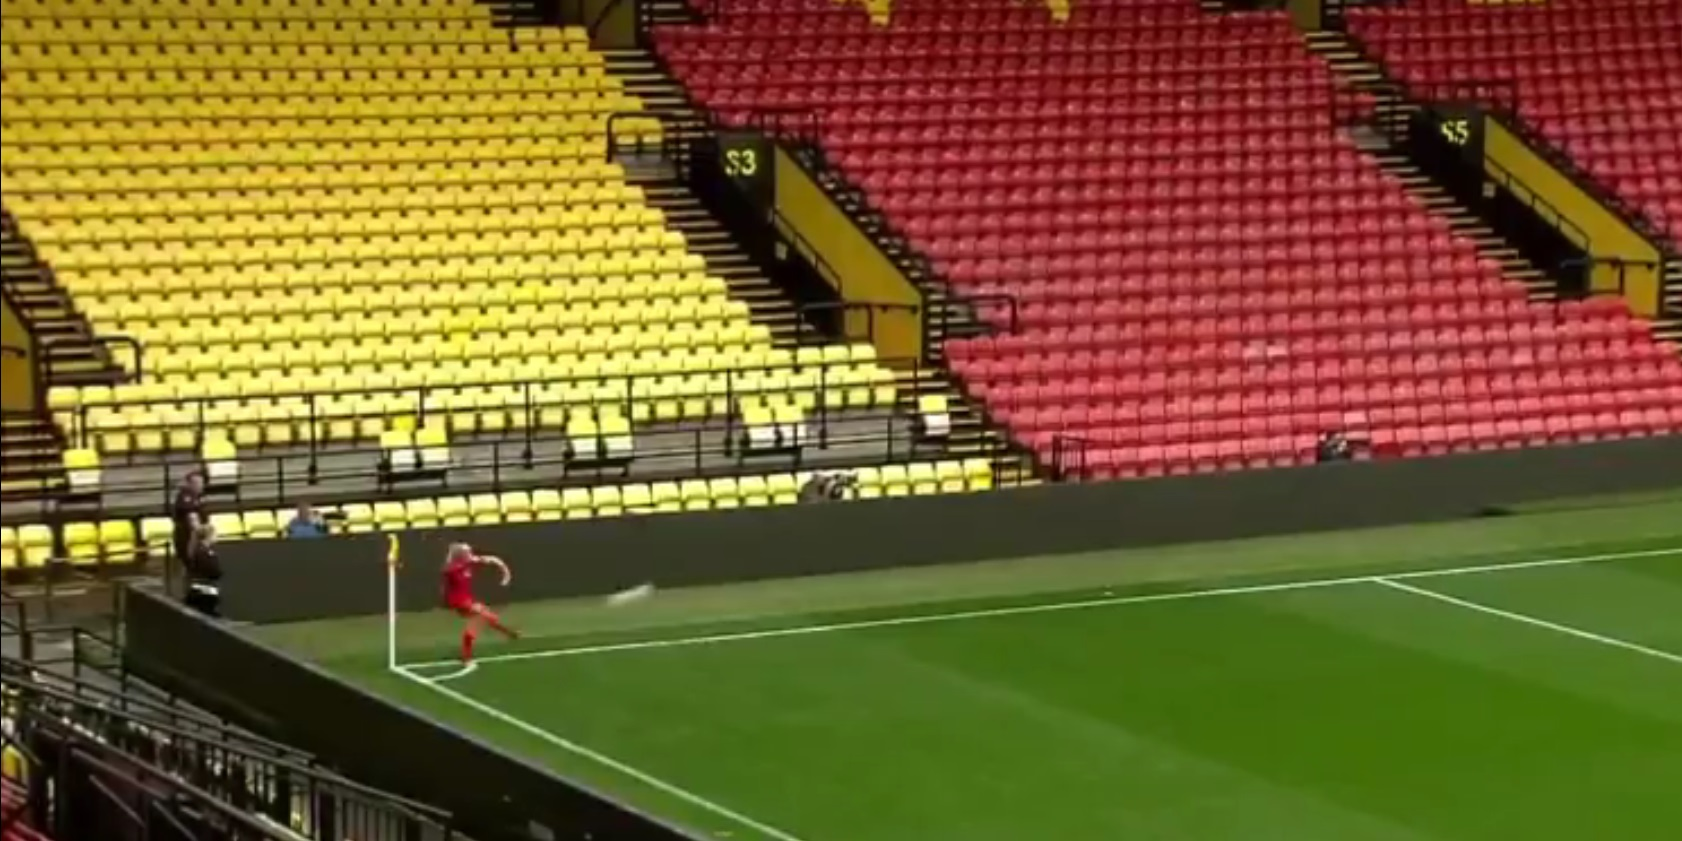 (Video) Liverpool FCW star scores goal directly from corner-kick with classy skill